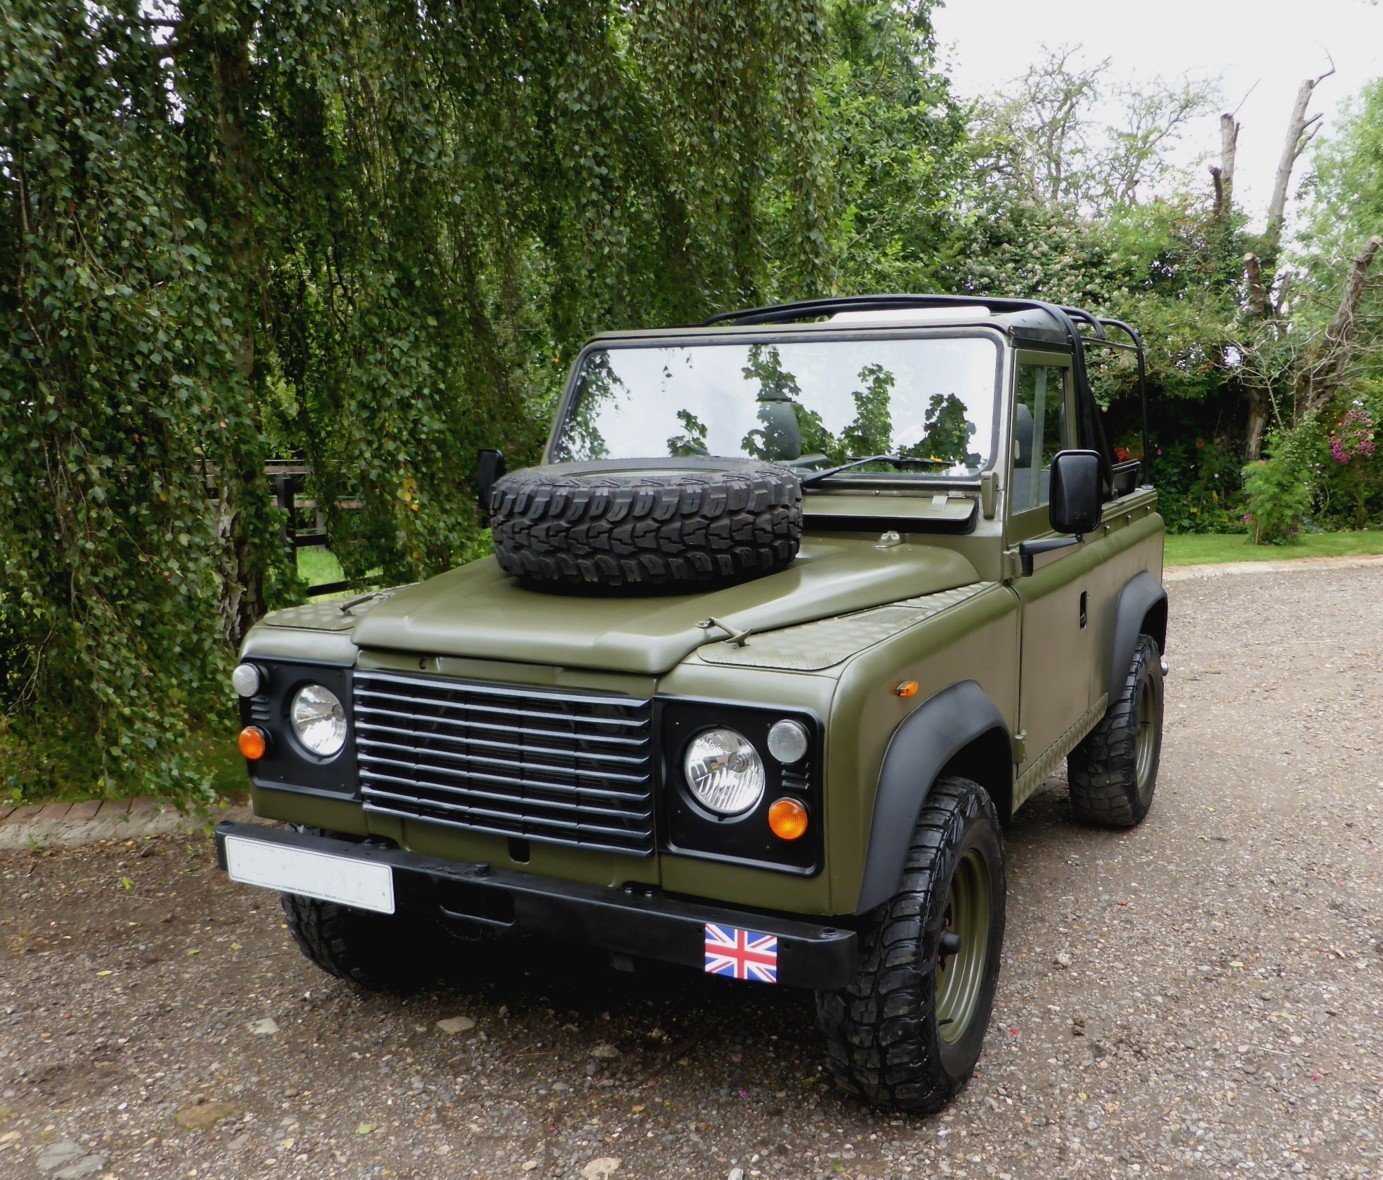 1988 Ex Mod Land Rover 90 Soft Top SOLD (picture 1 of 6)